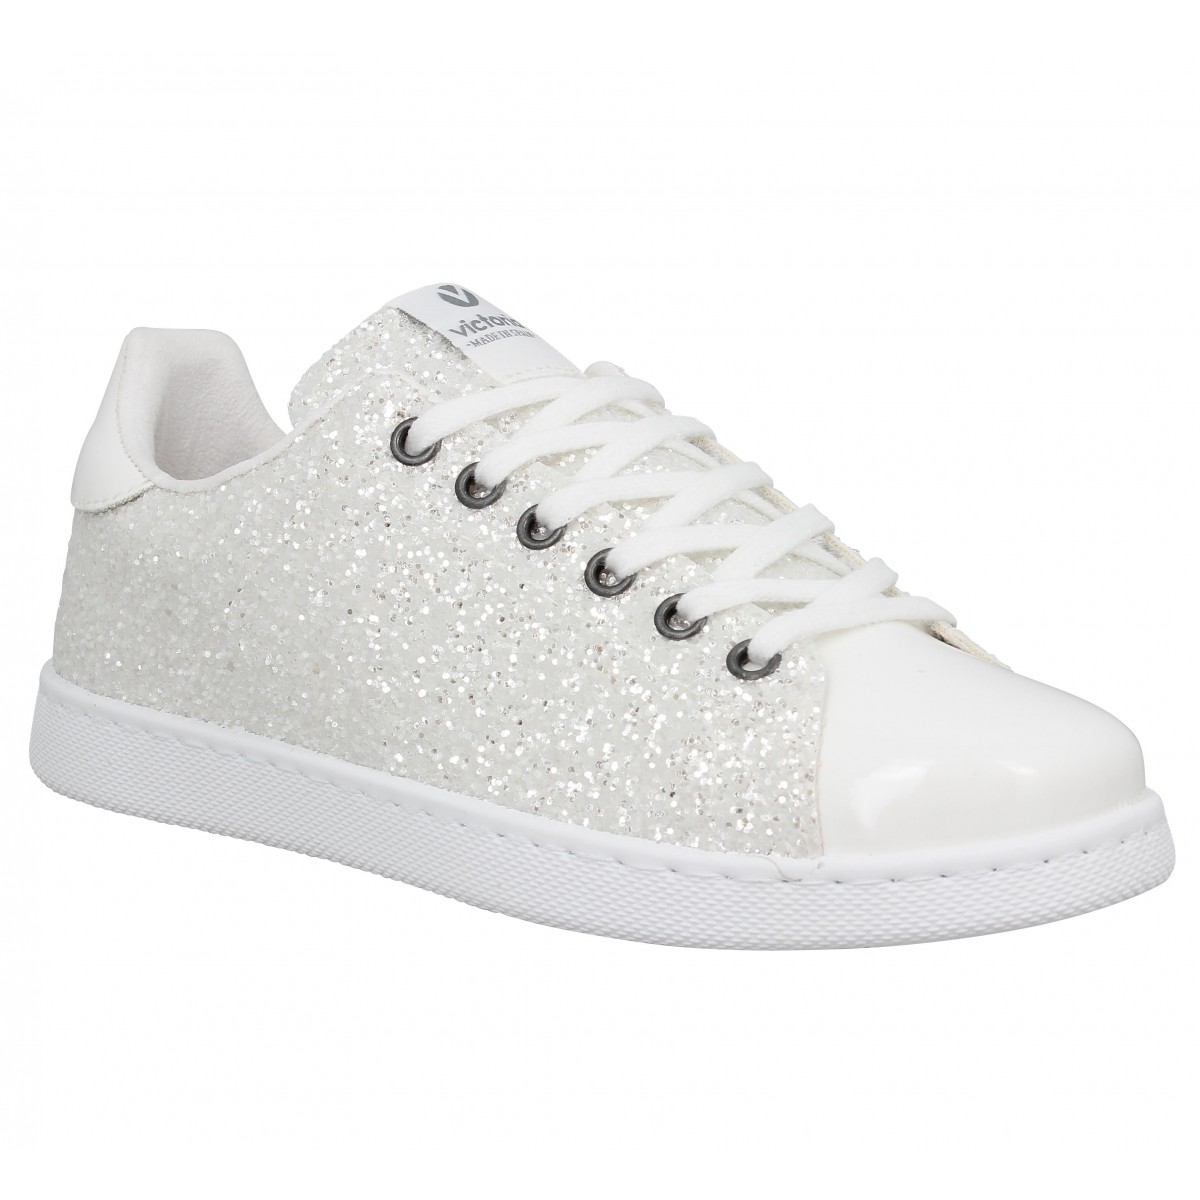 Glitter Chaussures Victoria Femme BlancFanny 12558 8wNkXn0OP